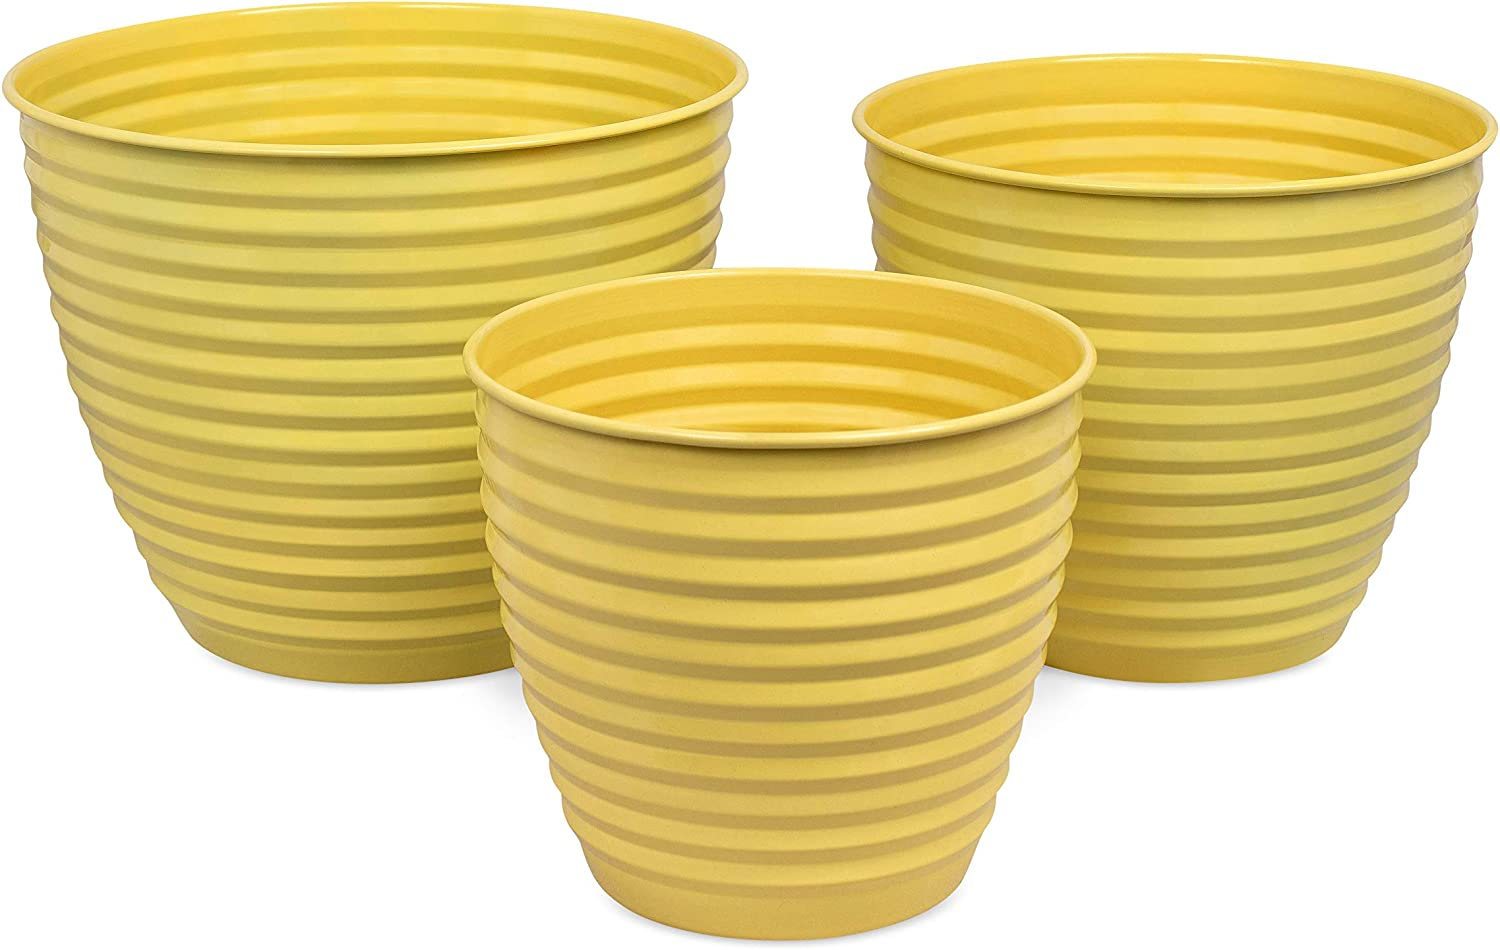 BirdRock Home Ribbed Planter Pot for Indoor or Outdoor Plant Flower – Set of 3 – Flowers Plants Trees Porch Garden Pots – Rust and Weather Resistant Set of 3 – Small, Medium, Large, Mellow Yellow